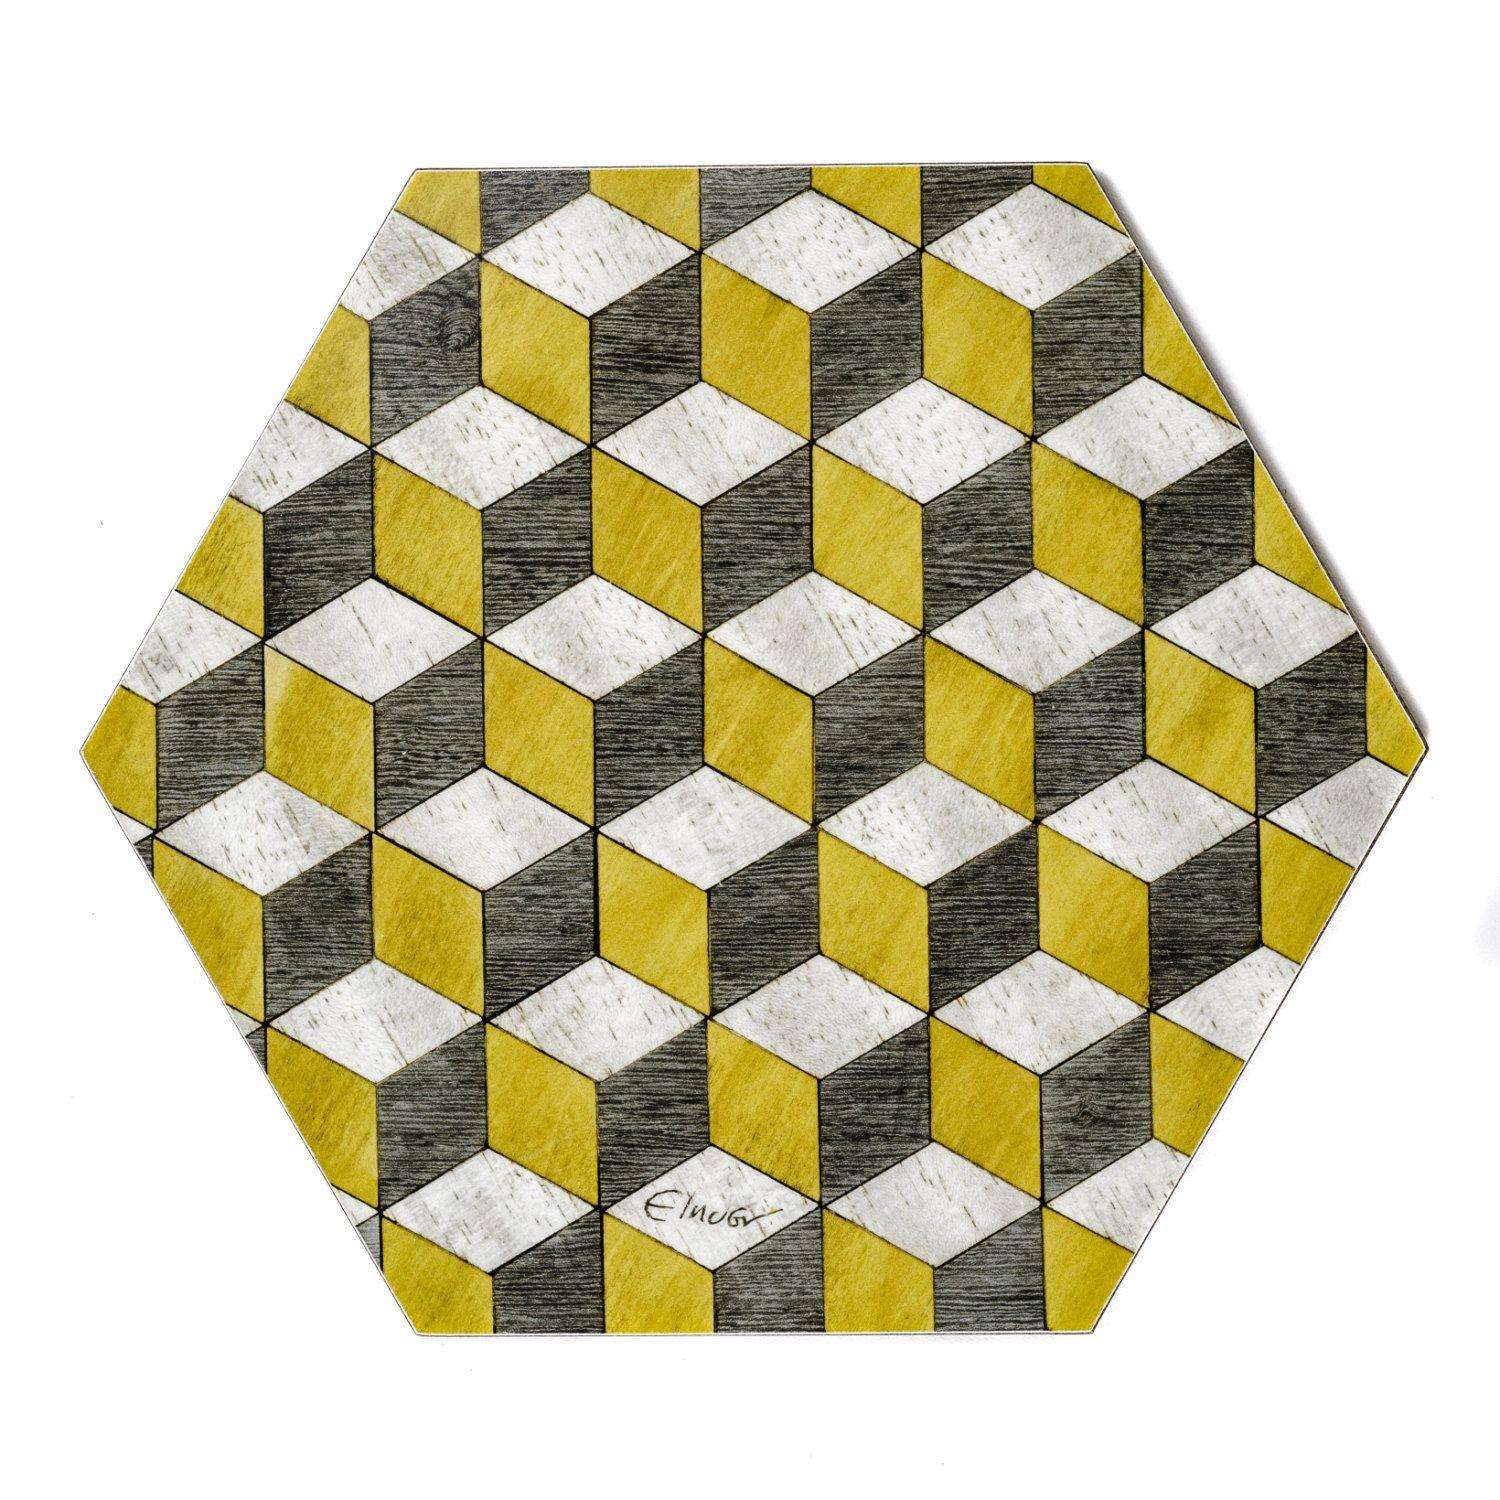 Yellow Placemats · 4 Hexagon Place Mats £32 Per Set Melamine Coated For Heat  Resistance Green Baize